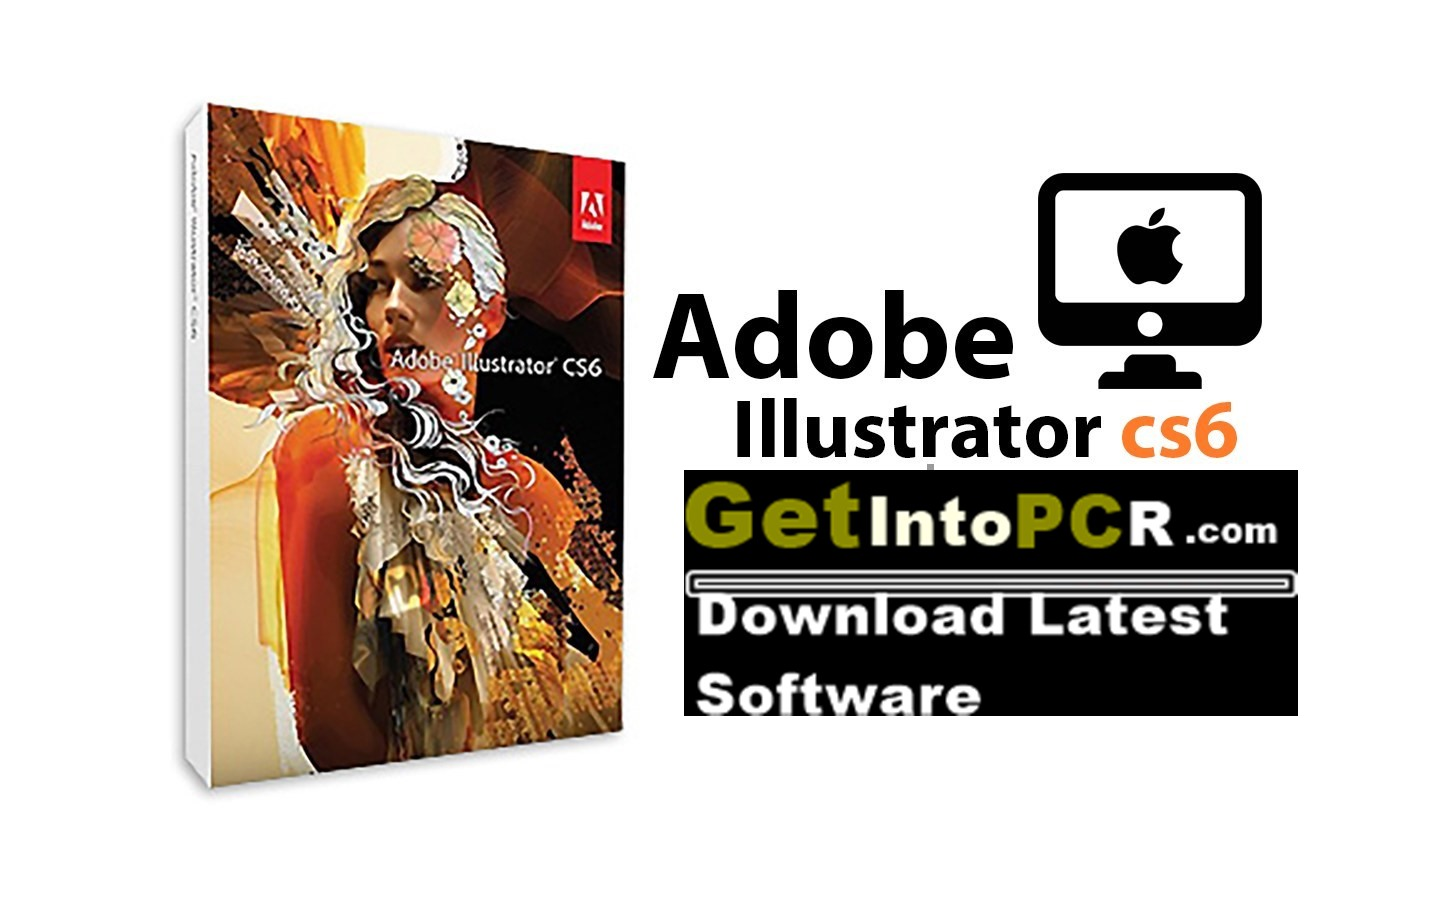 Adobe Illustrator Cs6 Free Download Full Version For Windows Get Into Pc Download Latest Free Software And Apps